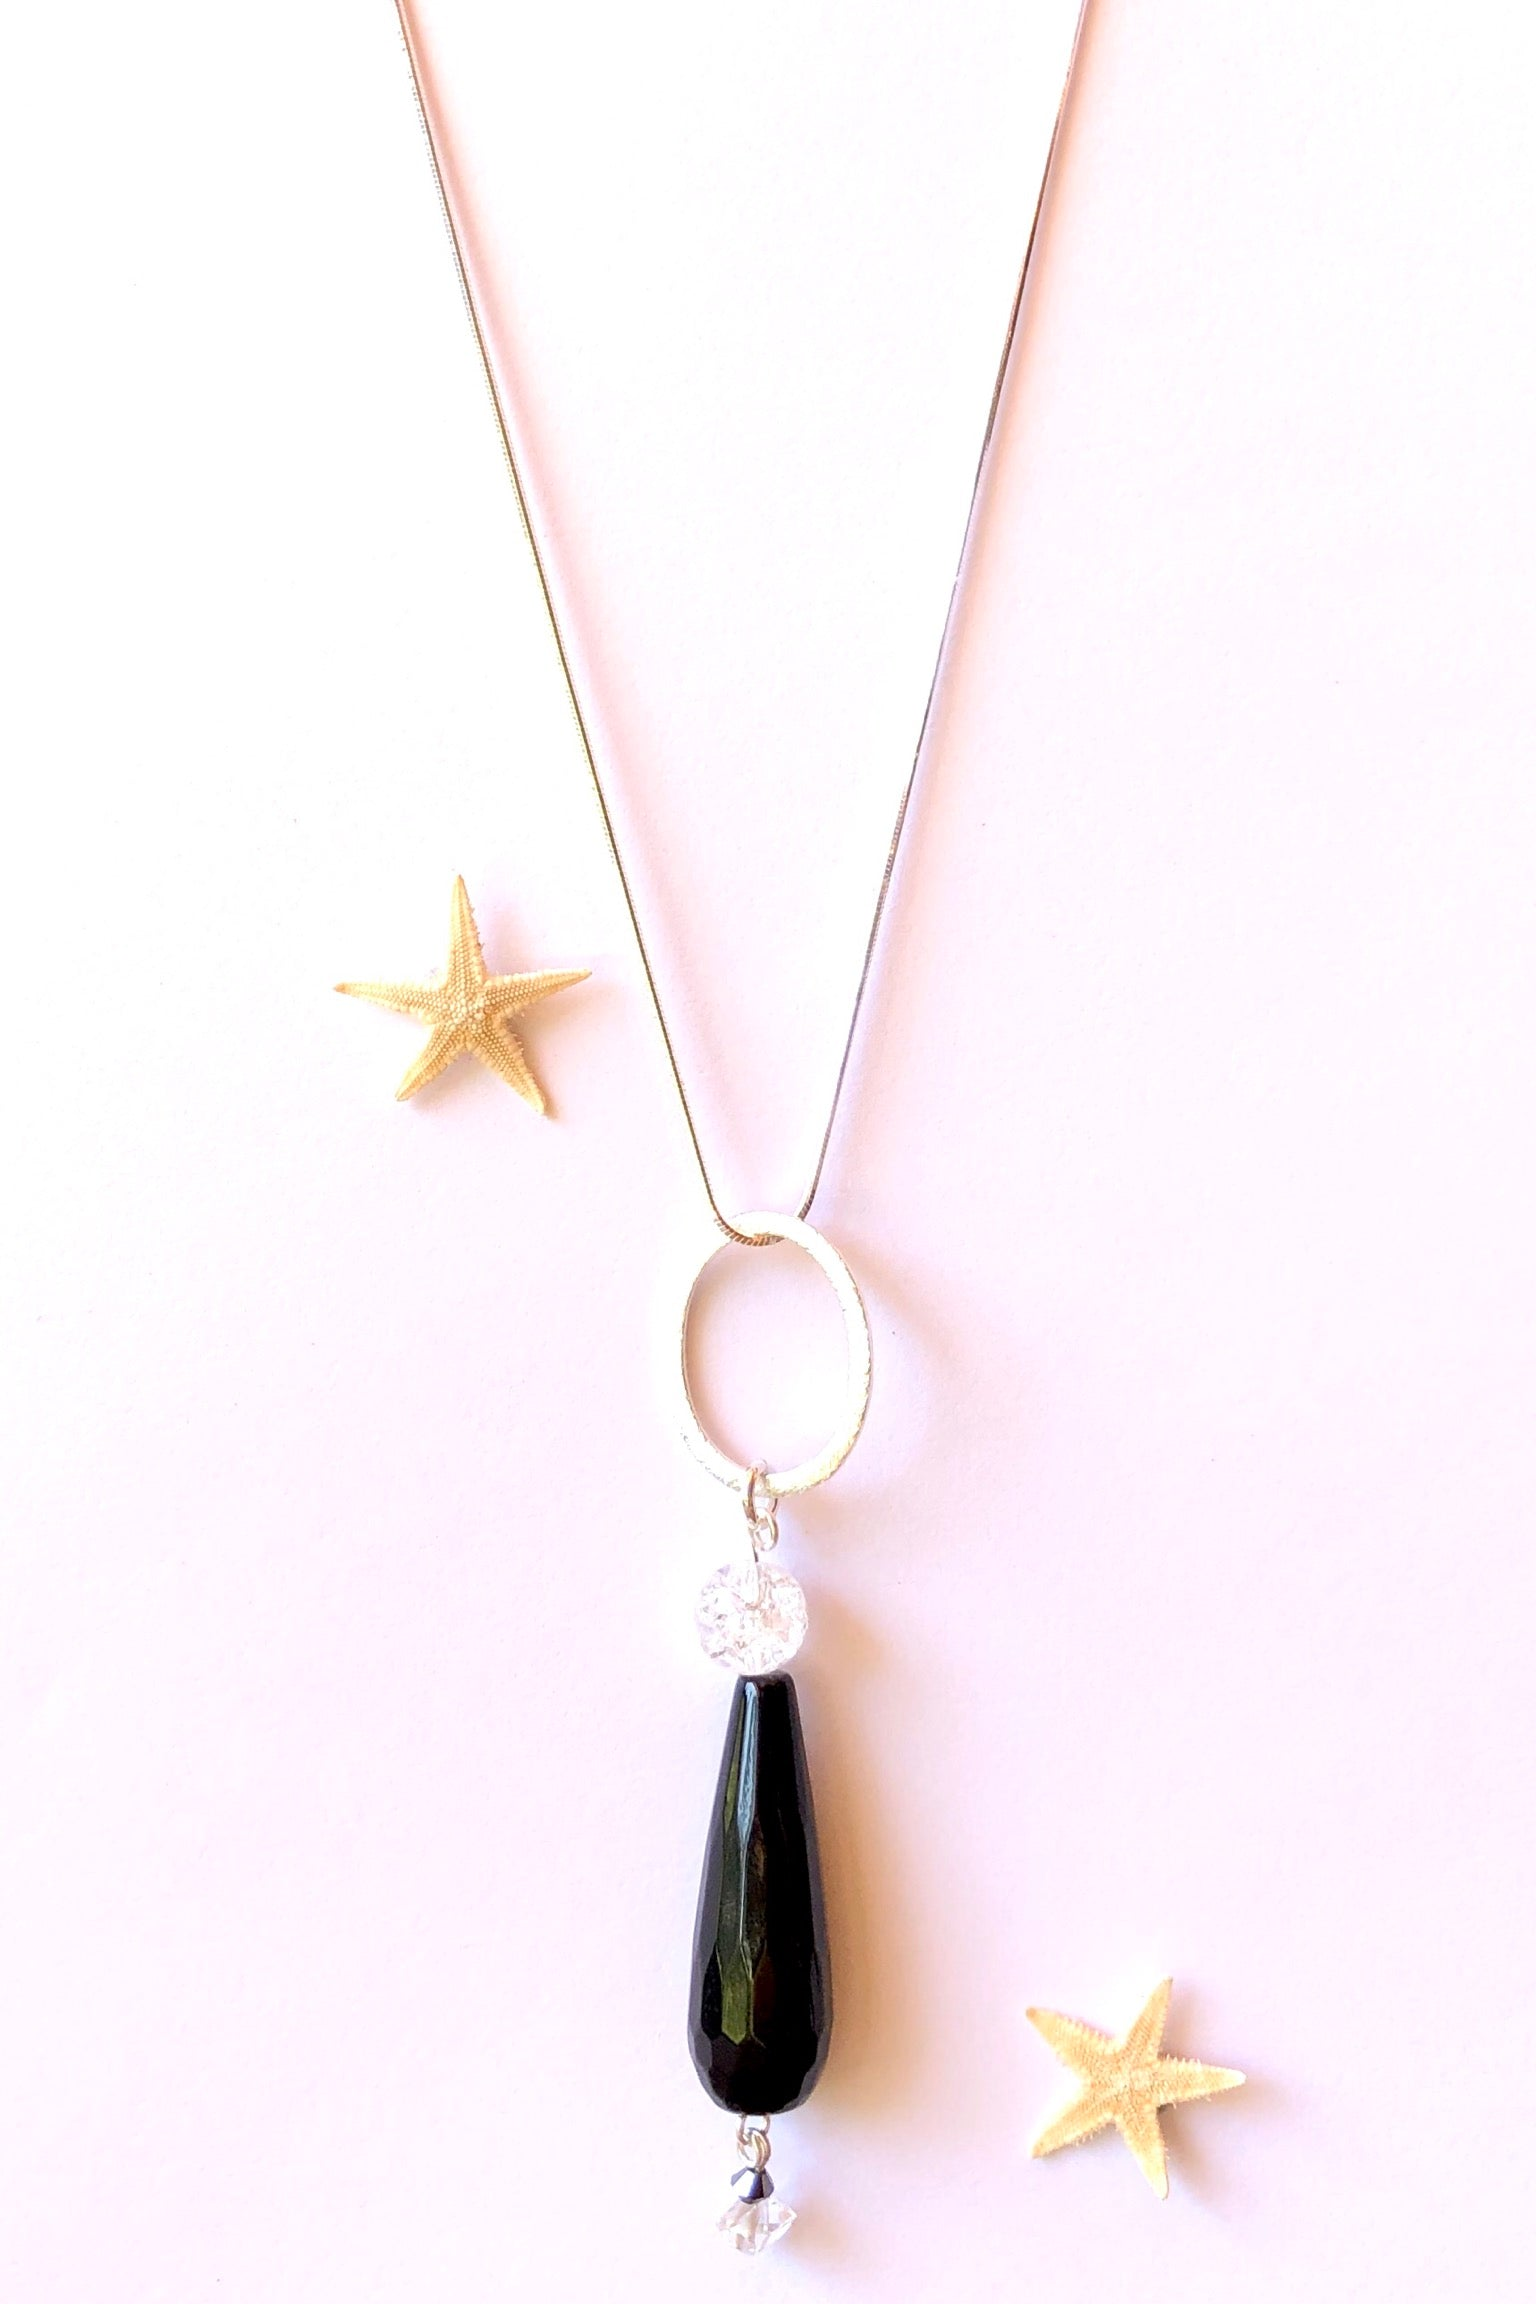 The Pendant Rock Droplet Jet Black is a chic necklace which brings a minimalist style to any outfit